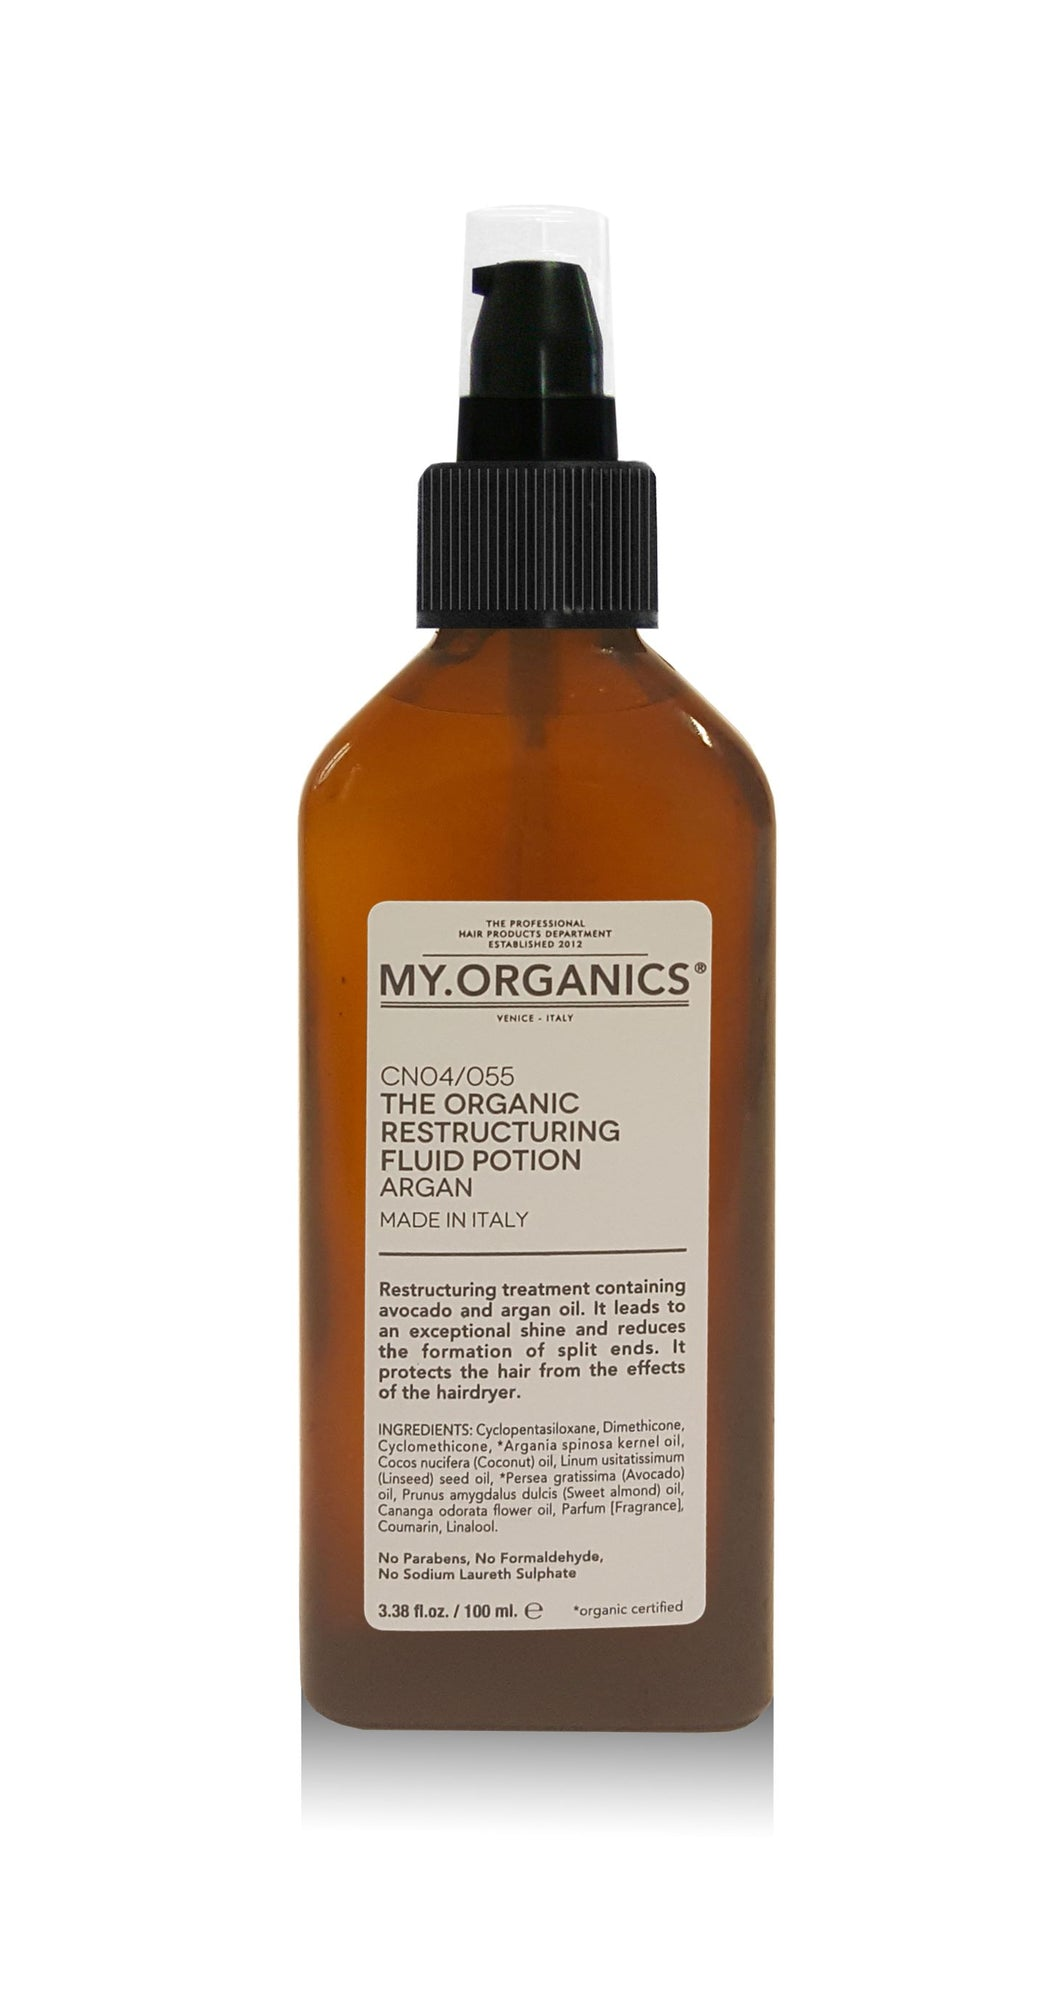 MY ORGANIC RESTRUCTURING FLUID POTION 100ML